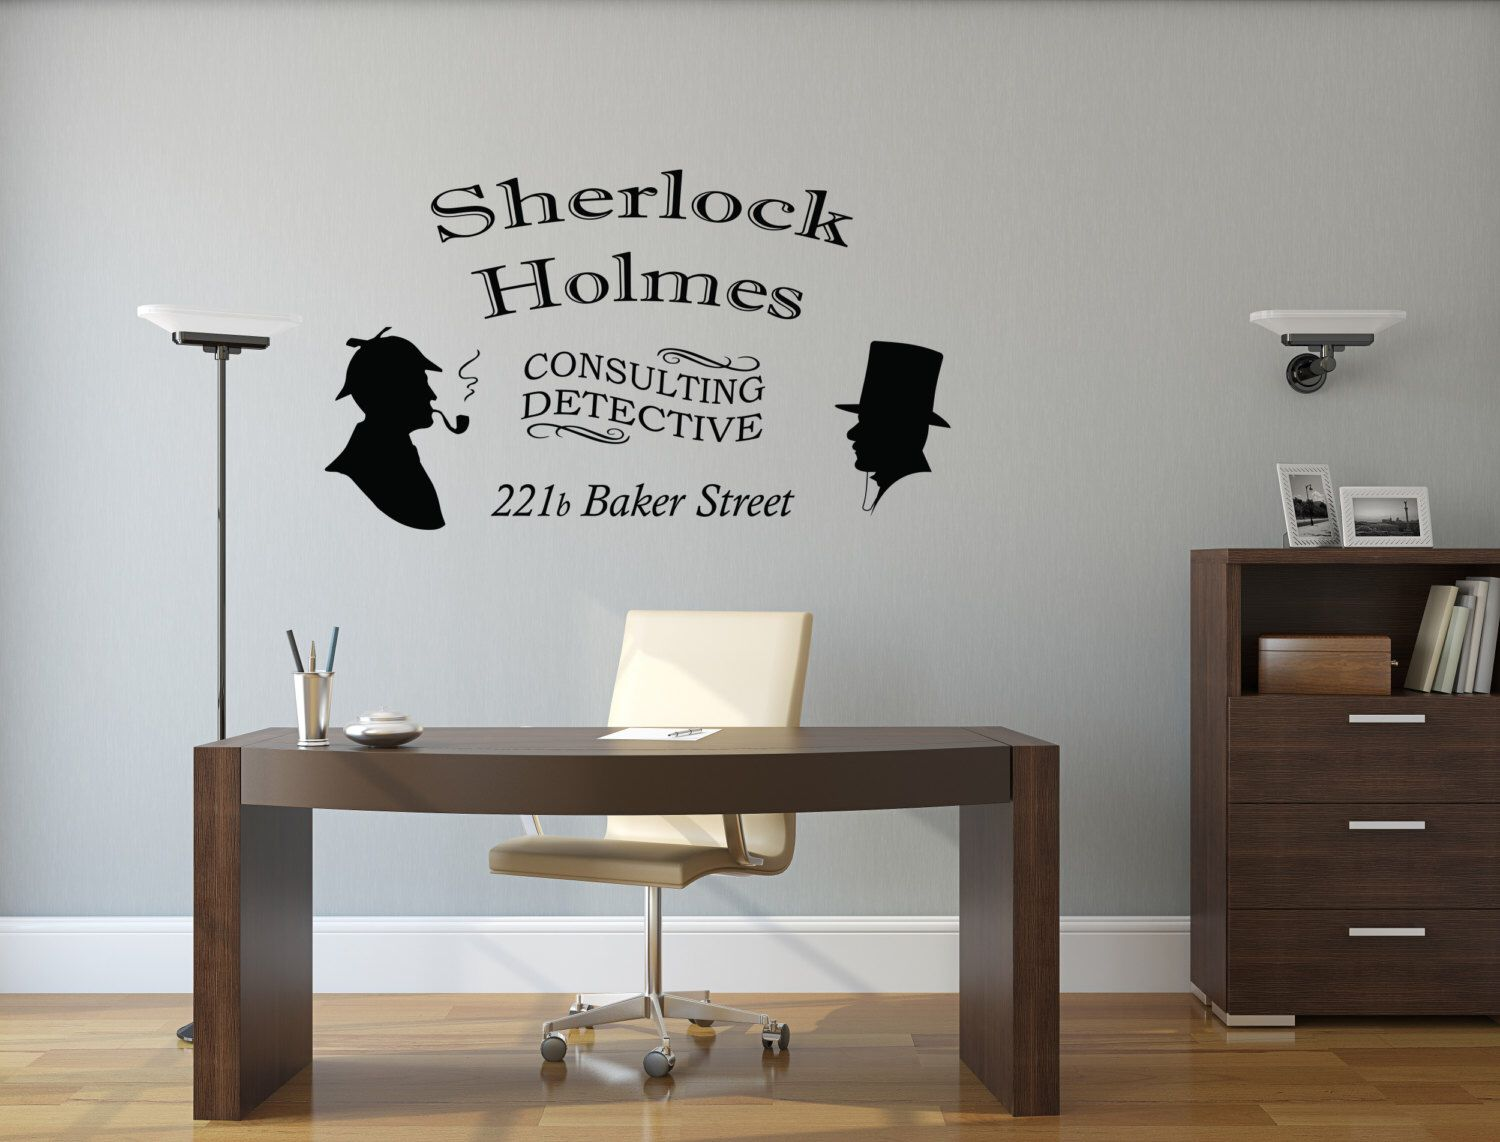 Sherlock Holmes Wall Decal Consulting Detective Room Wall Decor - Vinyl decals for walls etsy